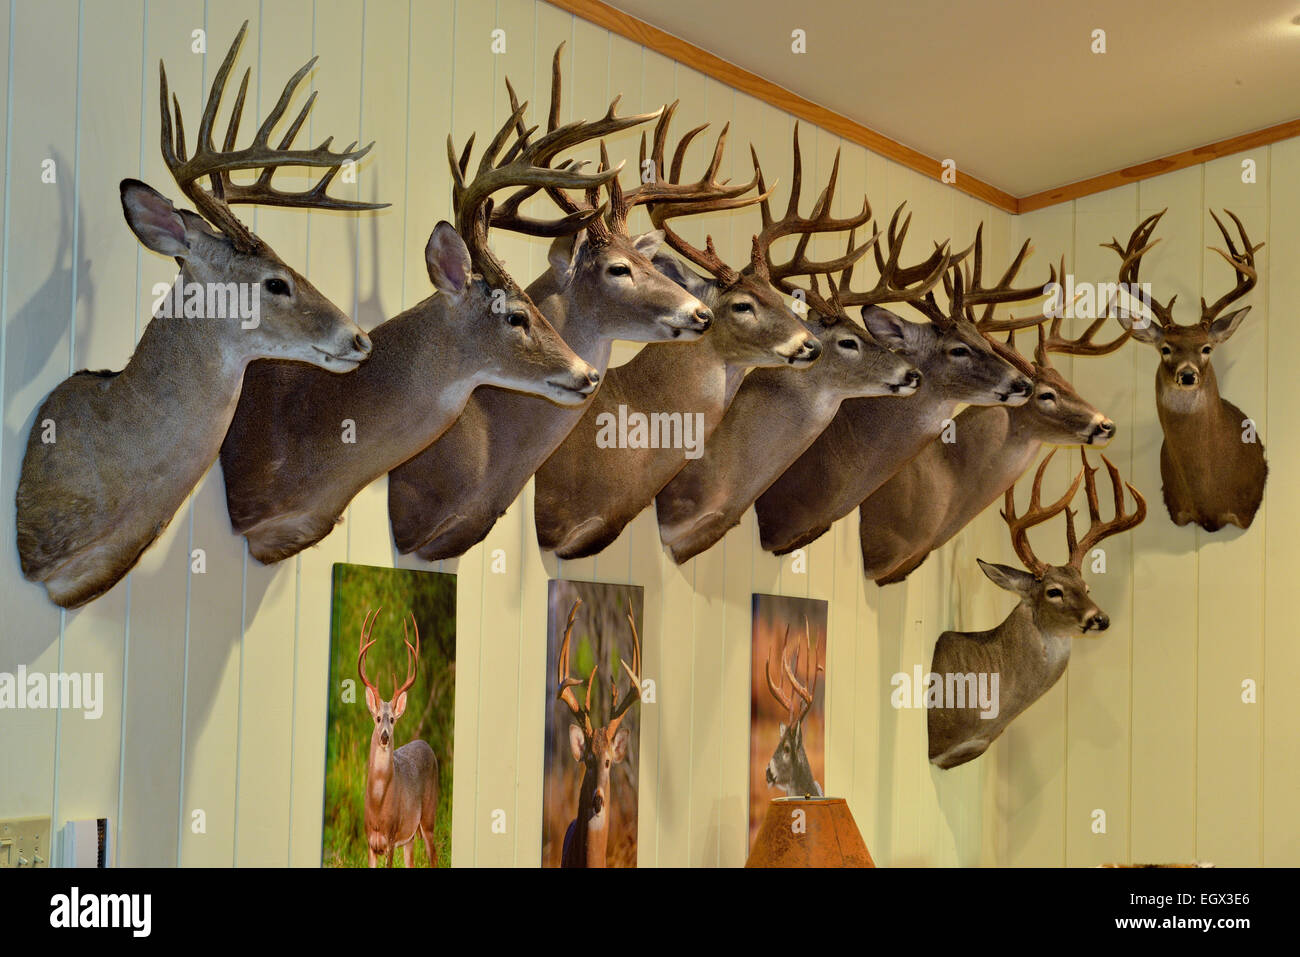 Trophy White Tail Deer Heads Mounted On A Wall Rio Grande City Texas USA